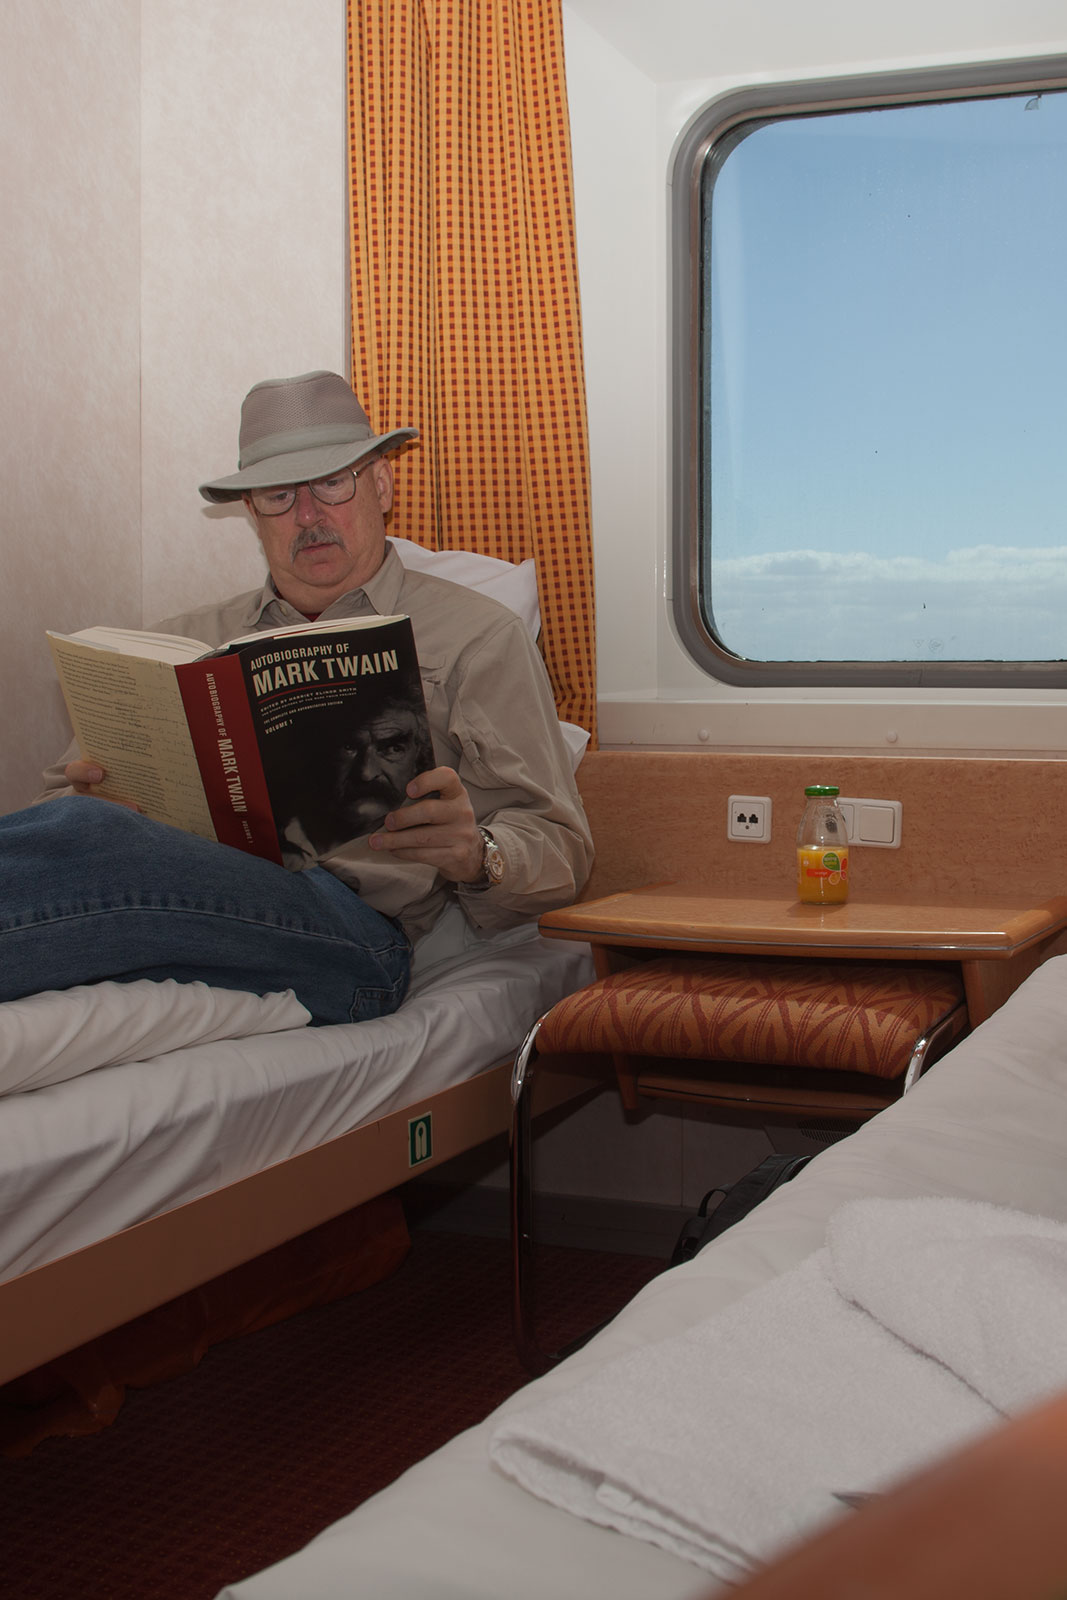 It's a long passage across the Bass Strait - plenty of time for some reading.